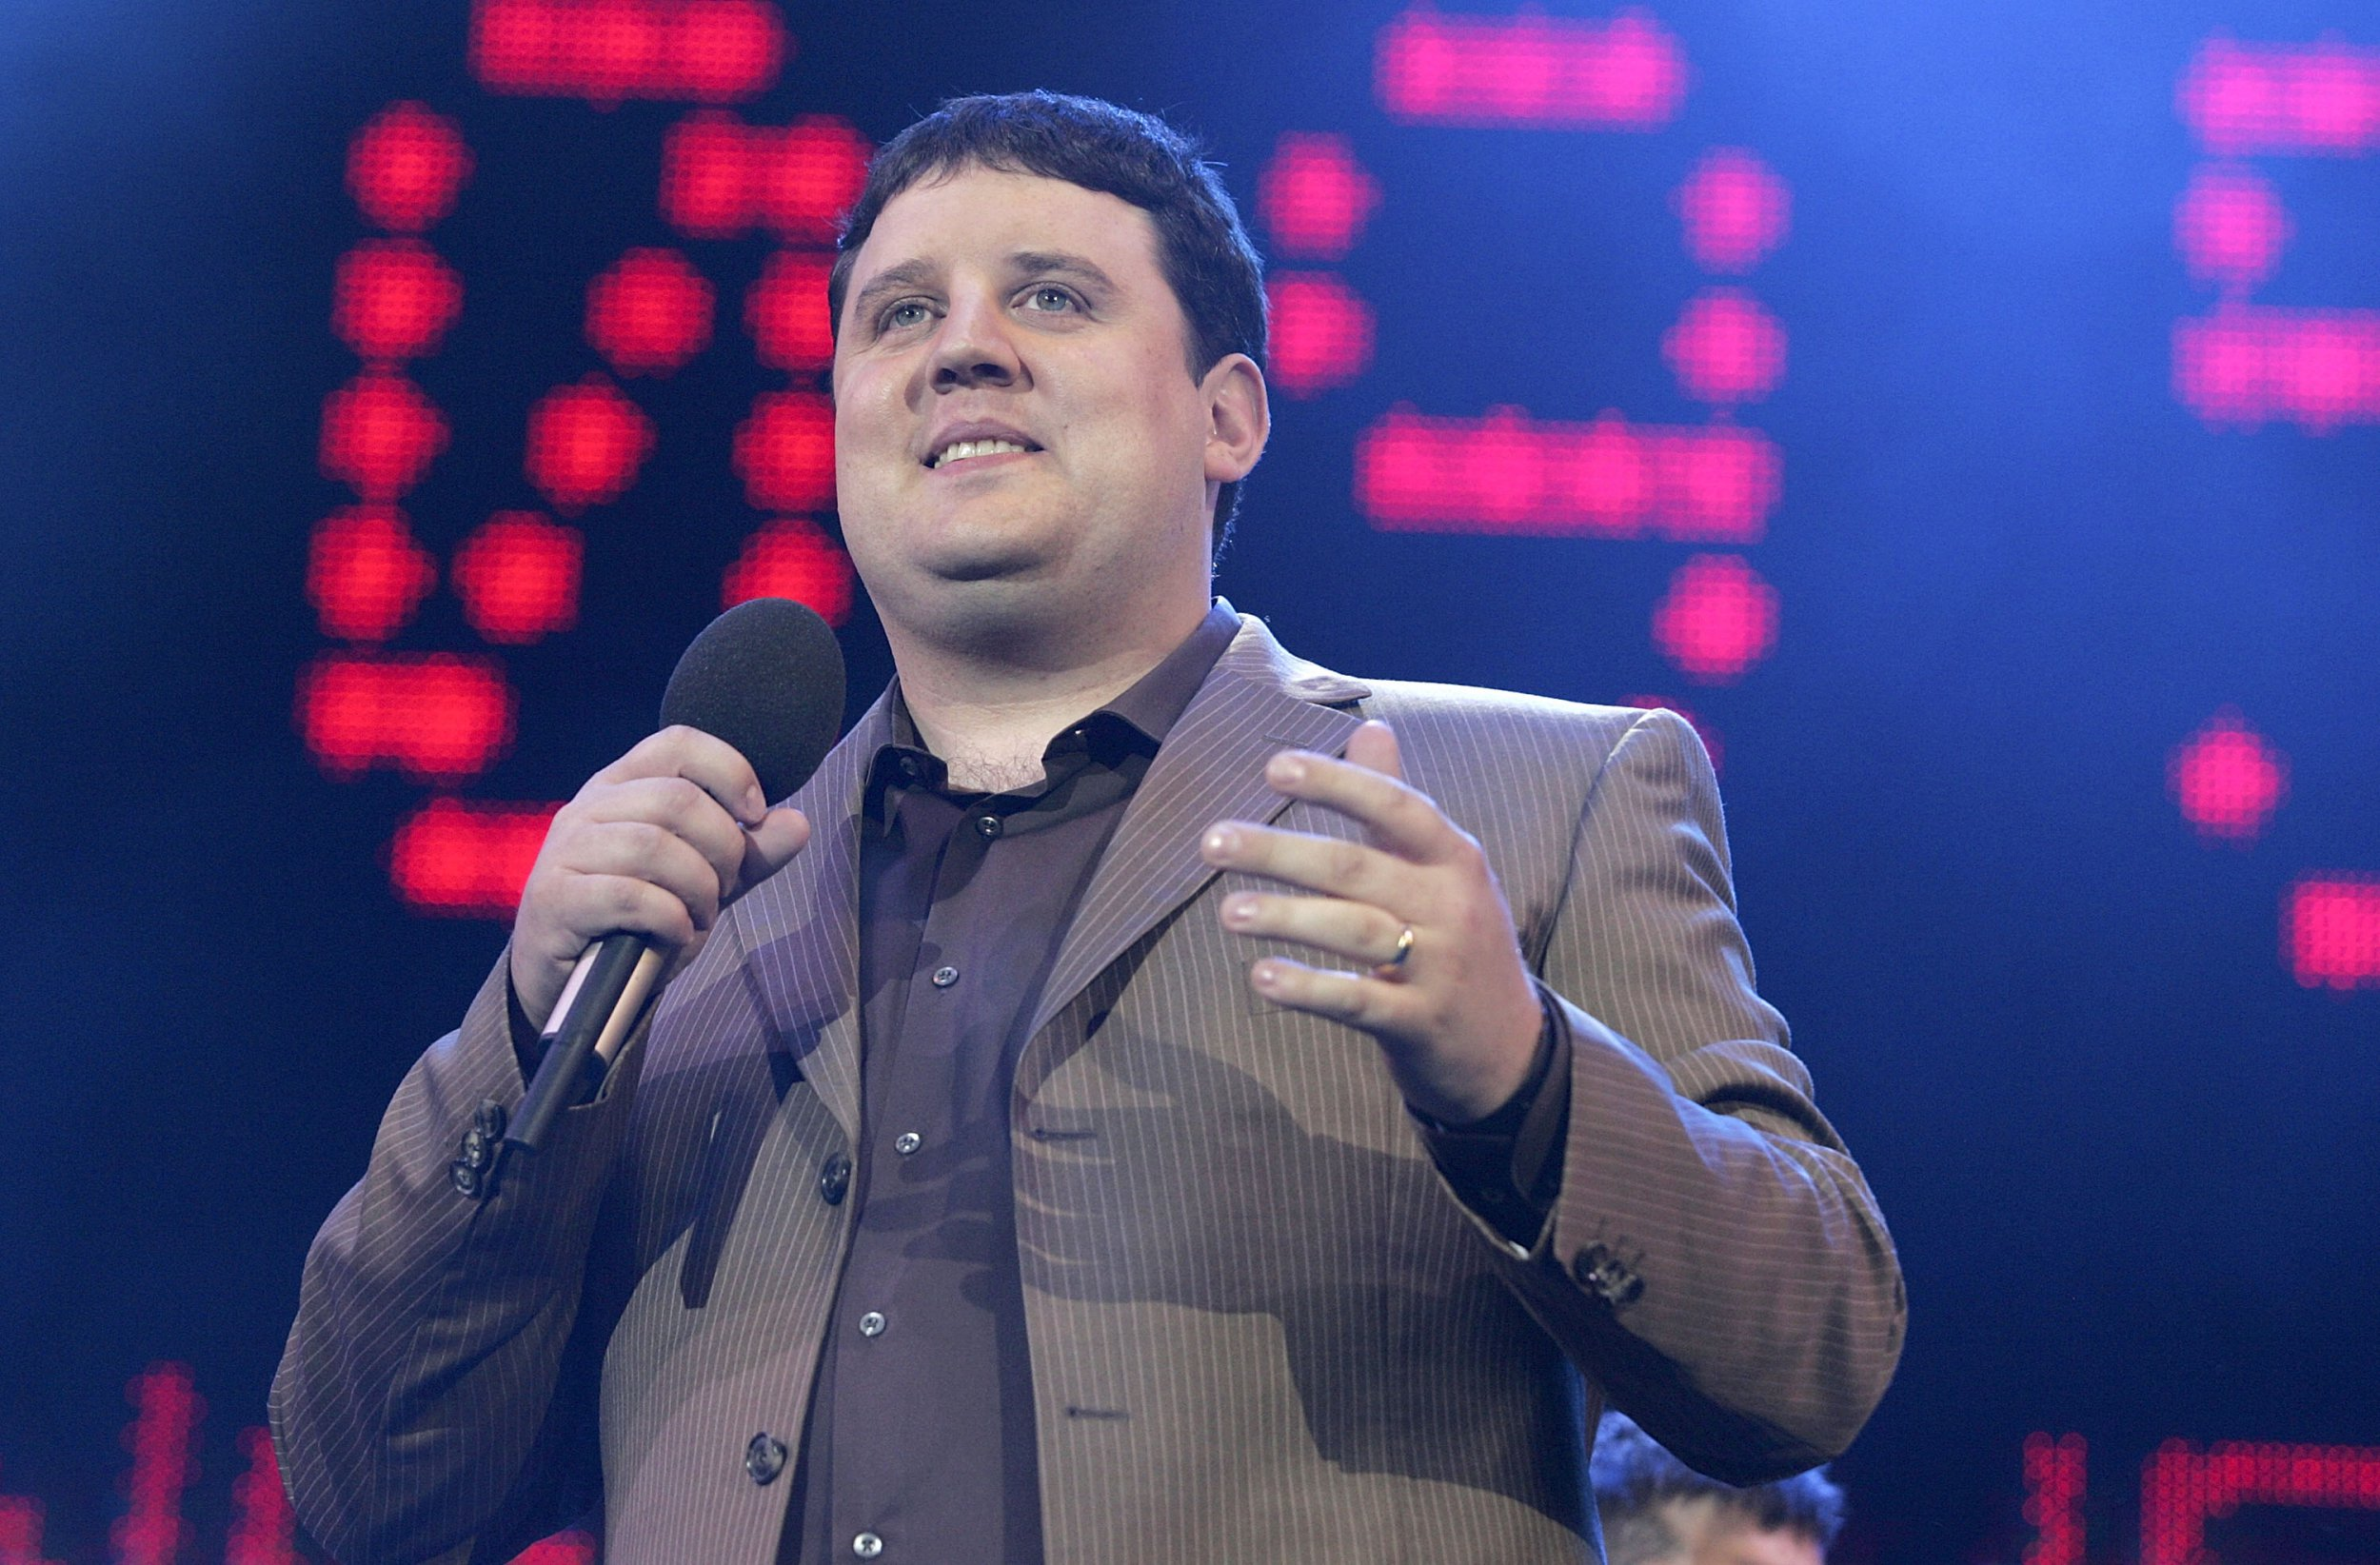 """LONDON - JULY 02: Comedian Peter Kay on stage at """"Live 8 London"""" in Hyde Park on July 2, 2005 in London, England. The free concert is one of ten simultaneous international gigs including Philadelphia, Berlin, Rome, Paris, Barrie, Tokyo, Cornwall, Moscow and Johannesburg. The concerts precede the G8 summit (July 6-8) to raising awareness for MAKEpovertyHISTORY. (Photo by Jo Hale/Getty Images)"""